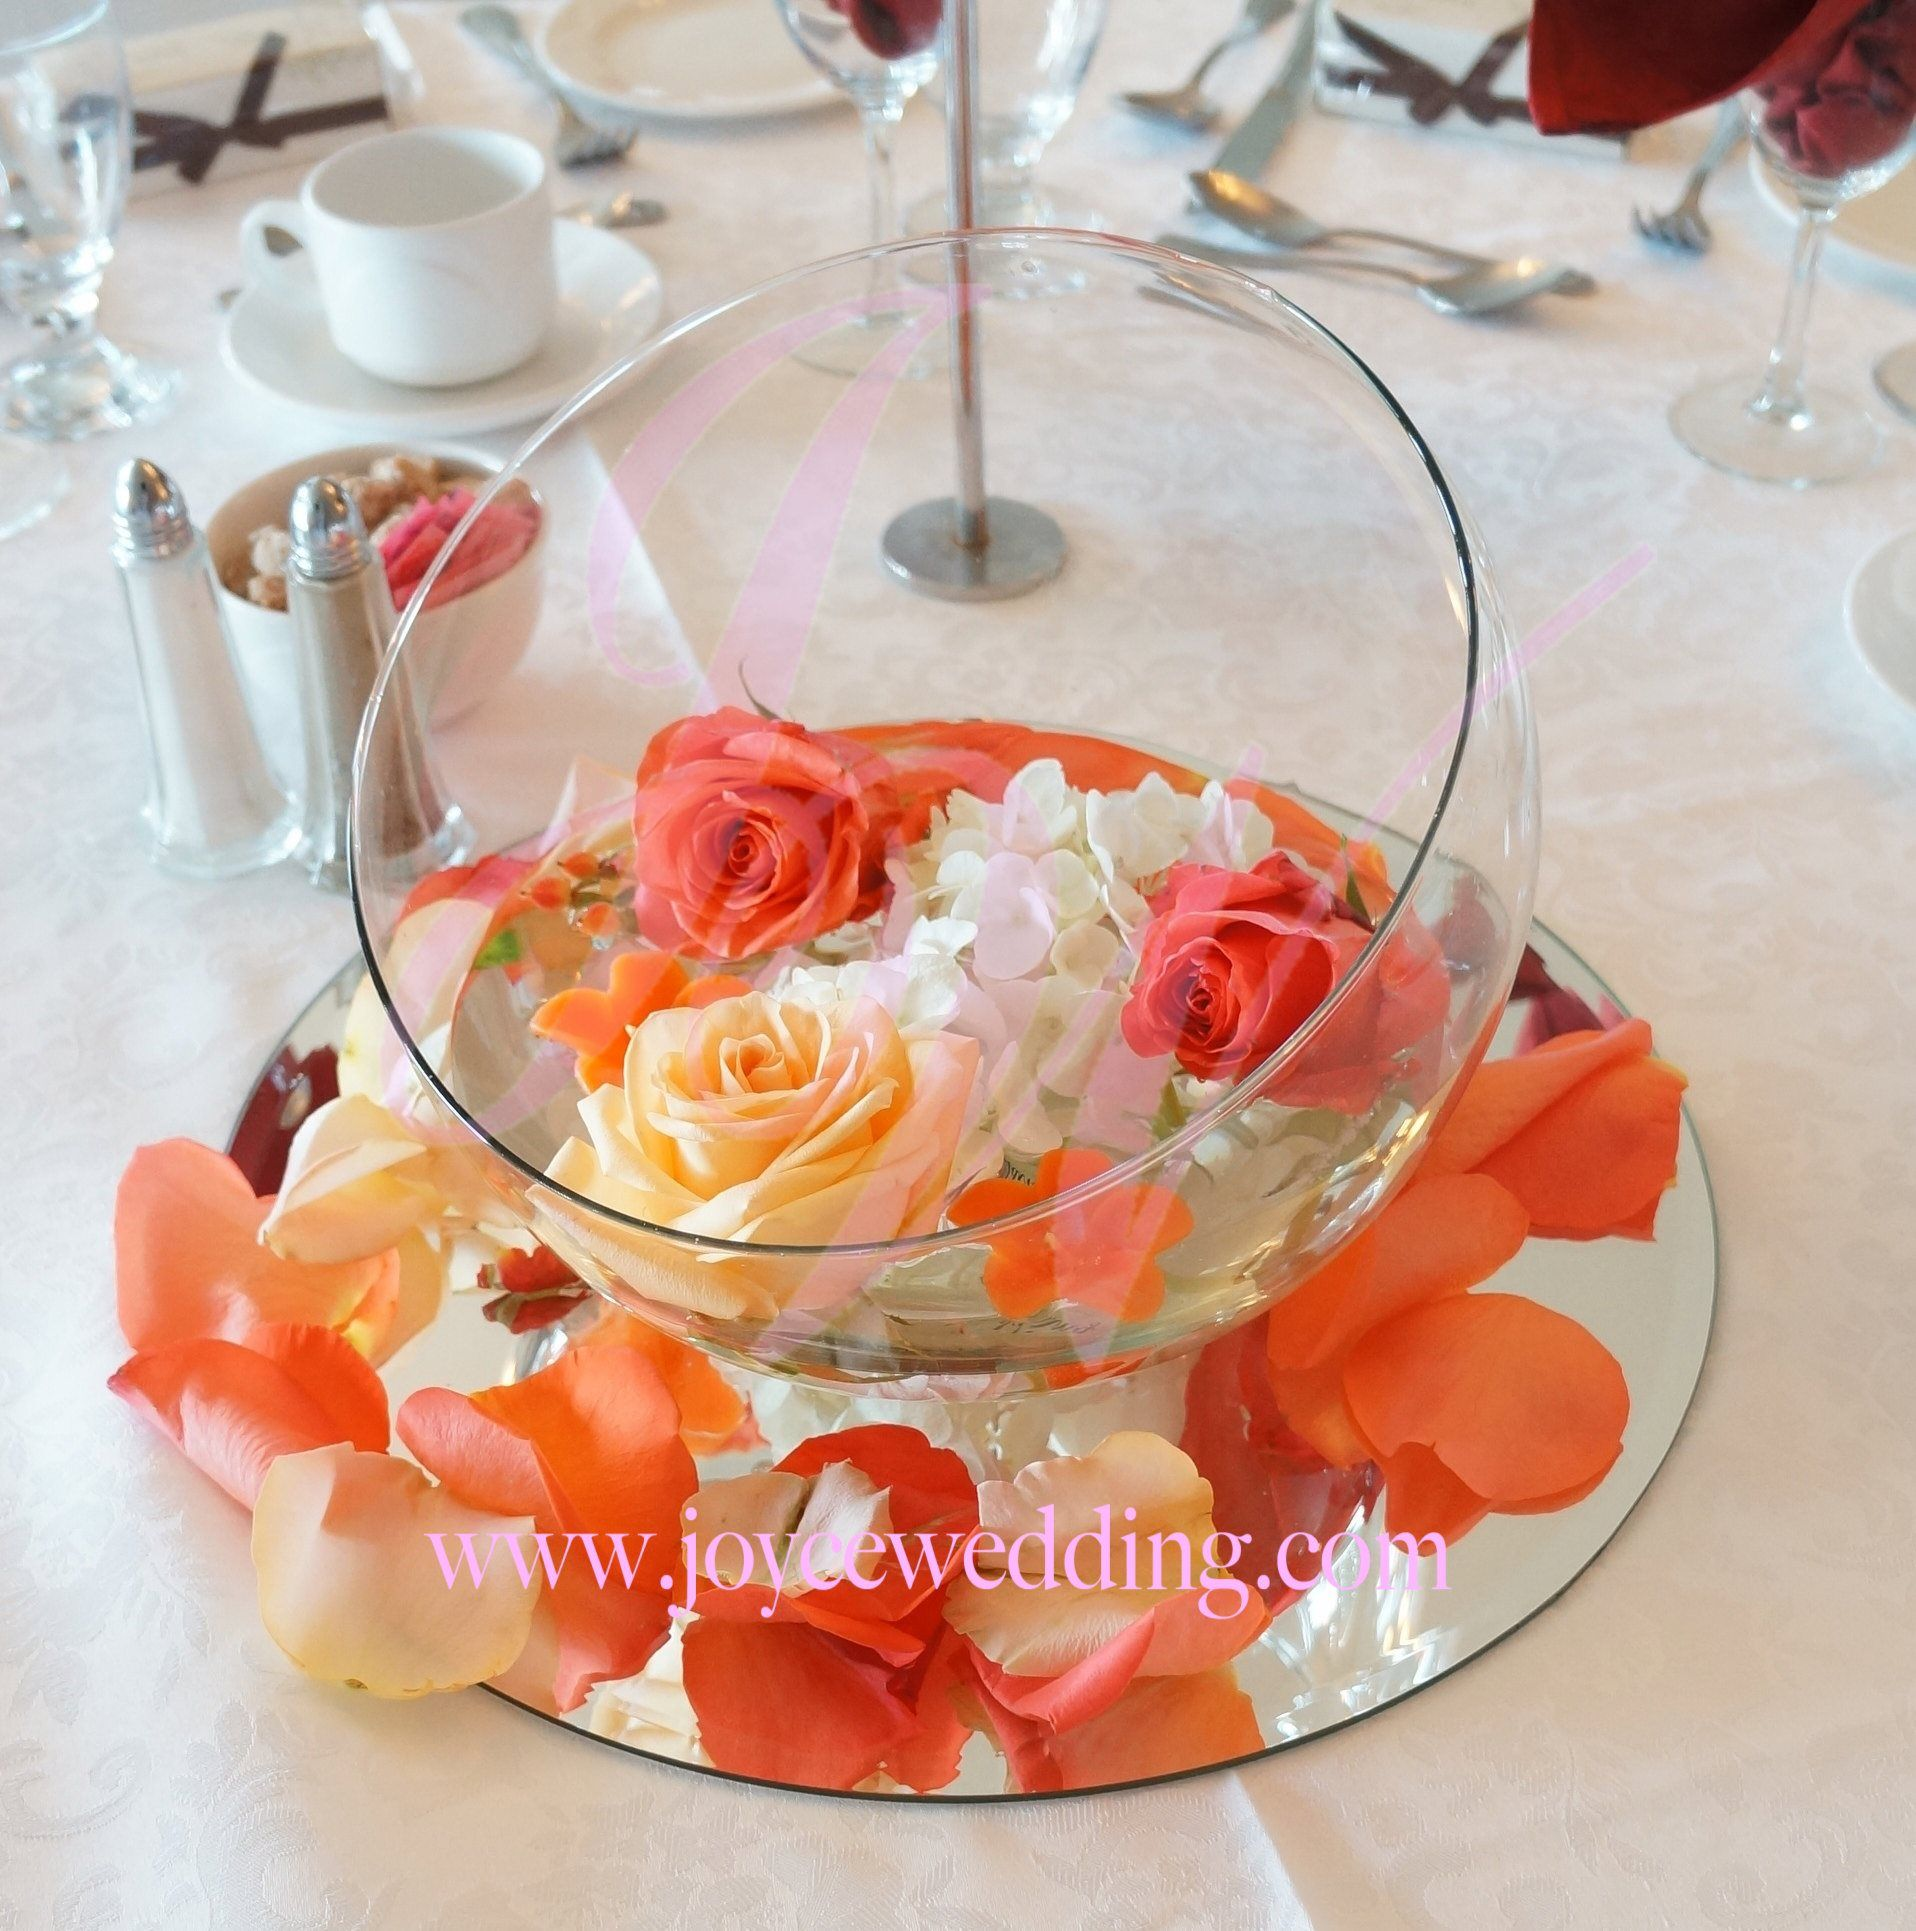 Coral And Peach Centerpiece With Floating Hydrangea And Rose On A Round Mirror With Petals Peach Candle Coral Flowers Centerpieces Mirror Centerpiece